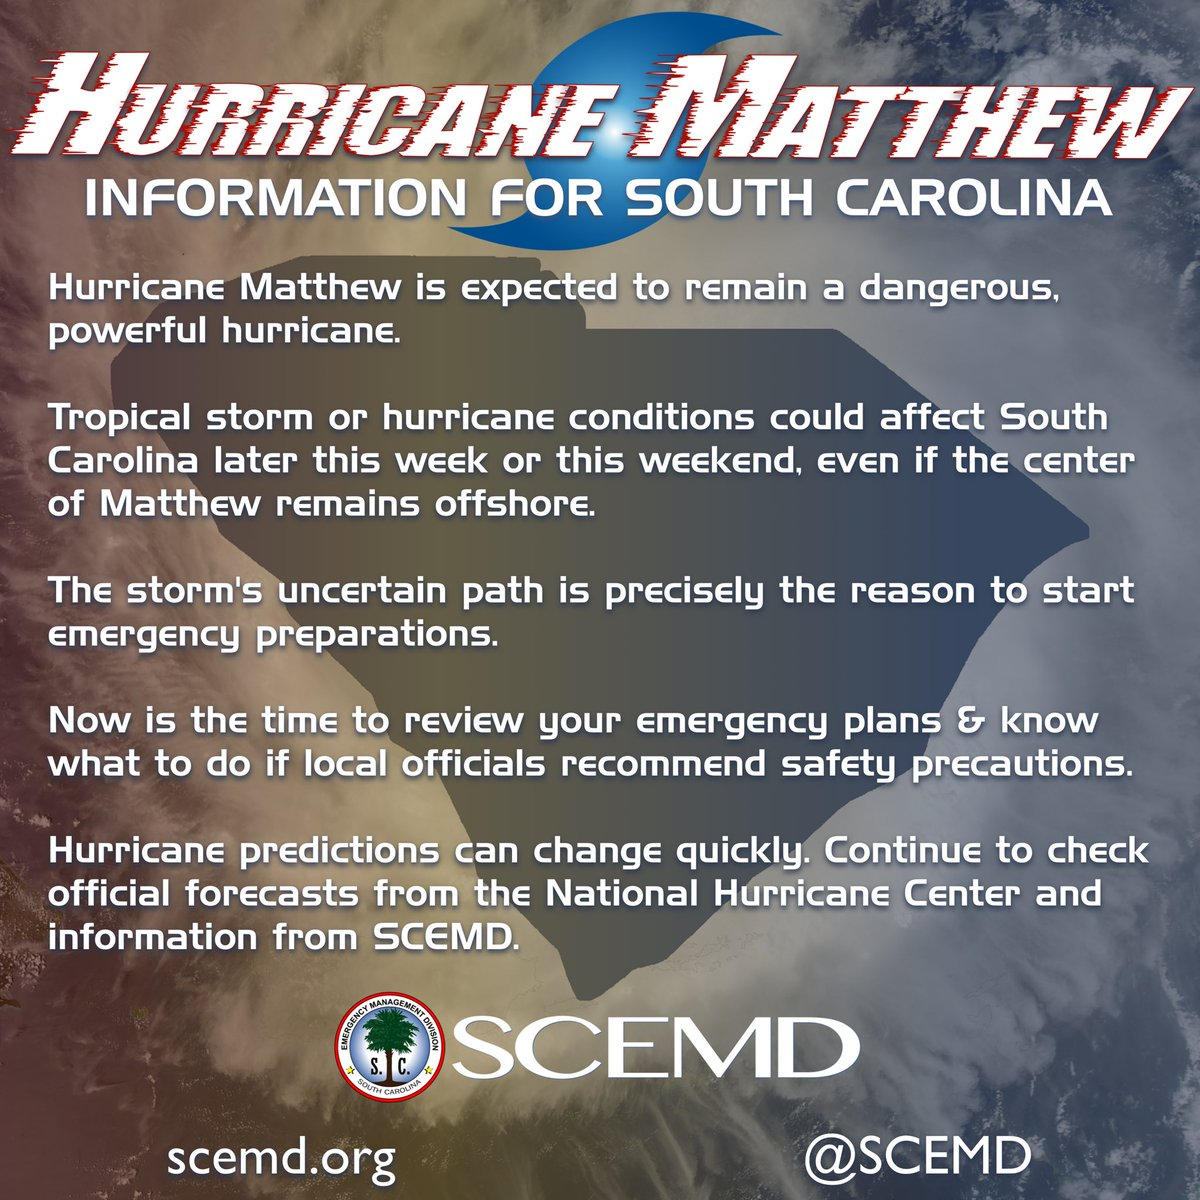 What are some safety precautions for hurricanes?